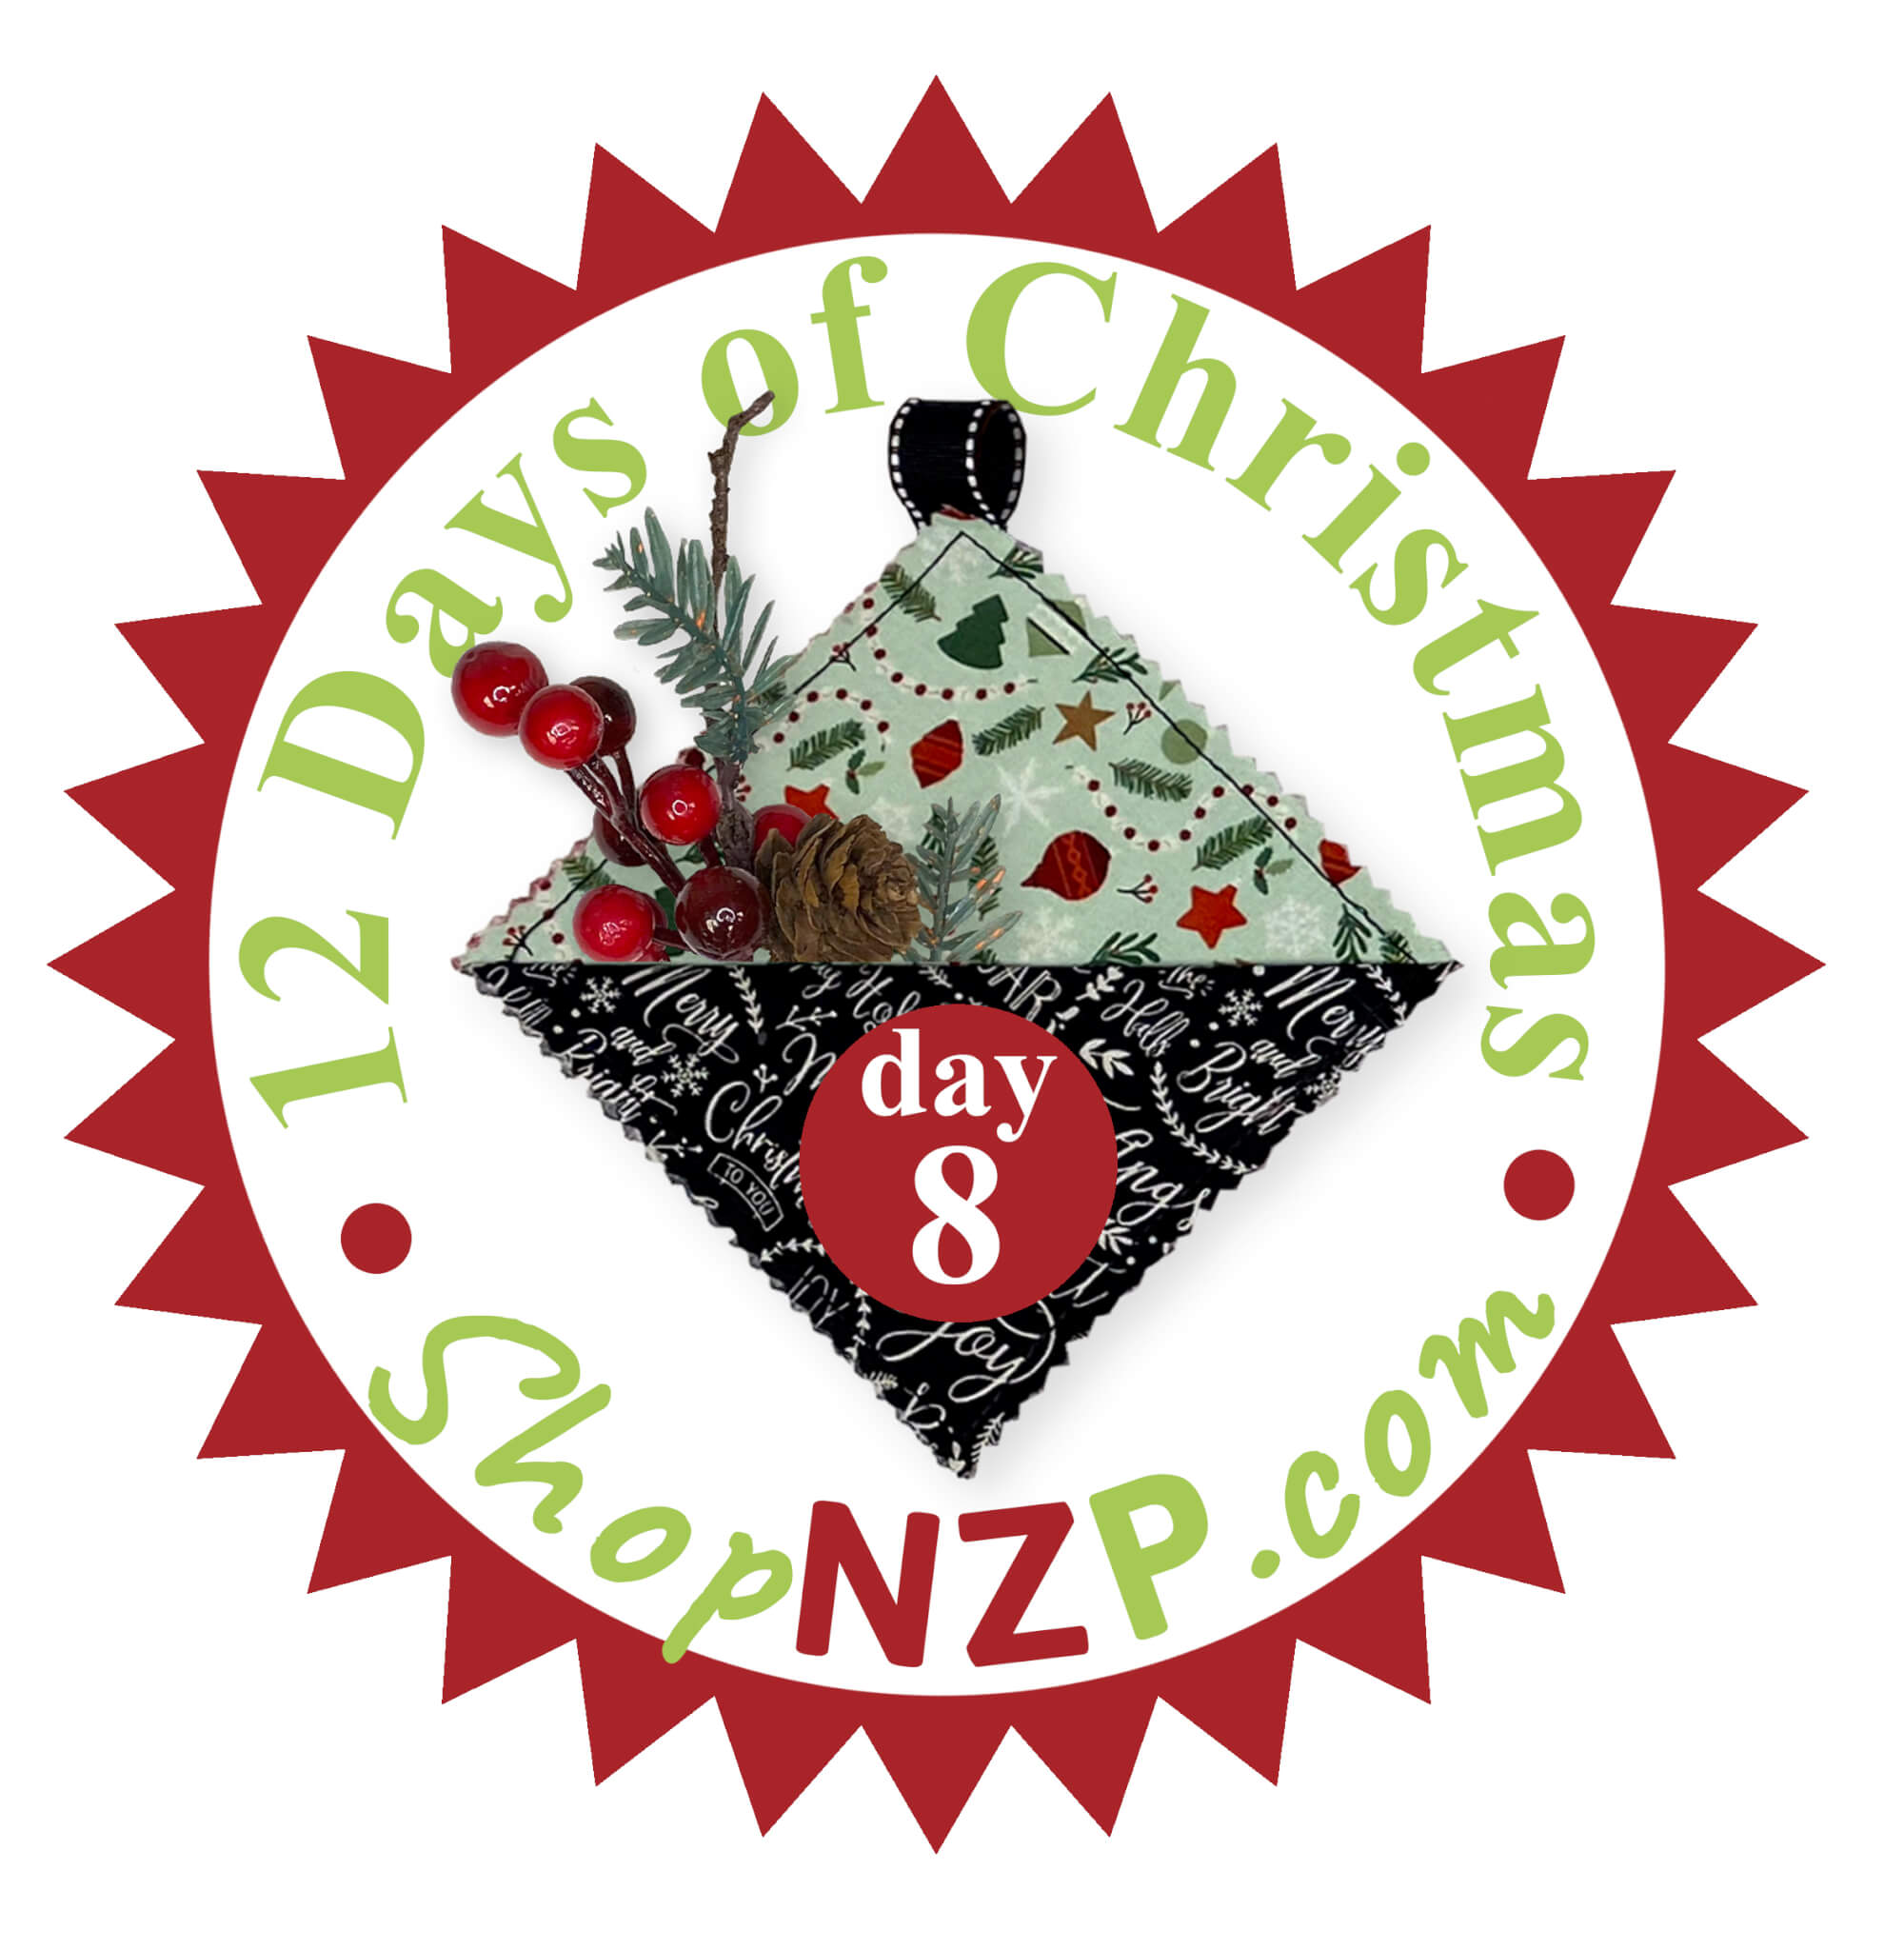 12 Days of Christmas Event at Nancy Zieman Productions at ShopNZP.com Day 8